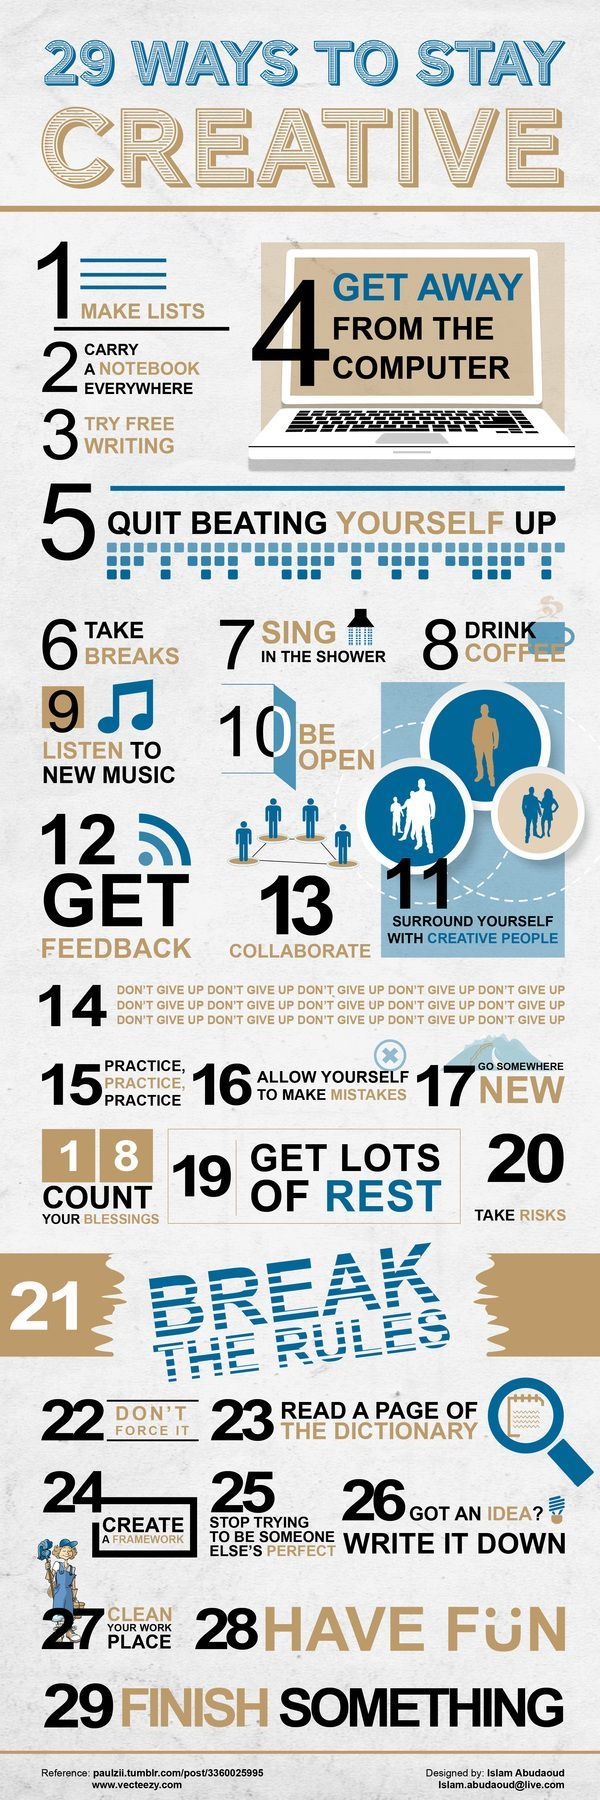 29-ways-to-stay-creative-poster